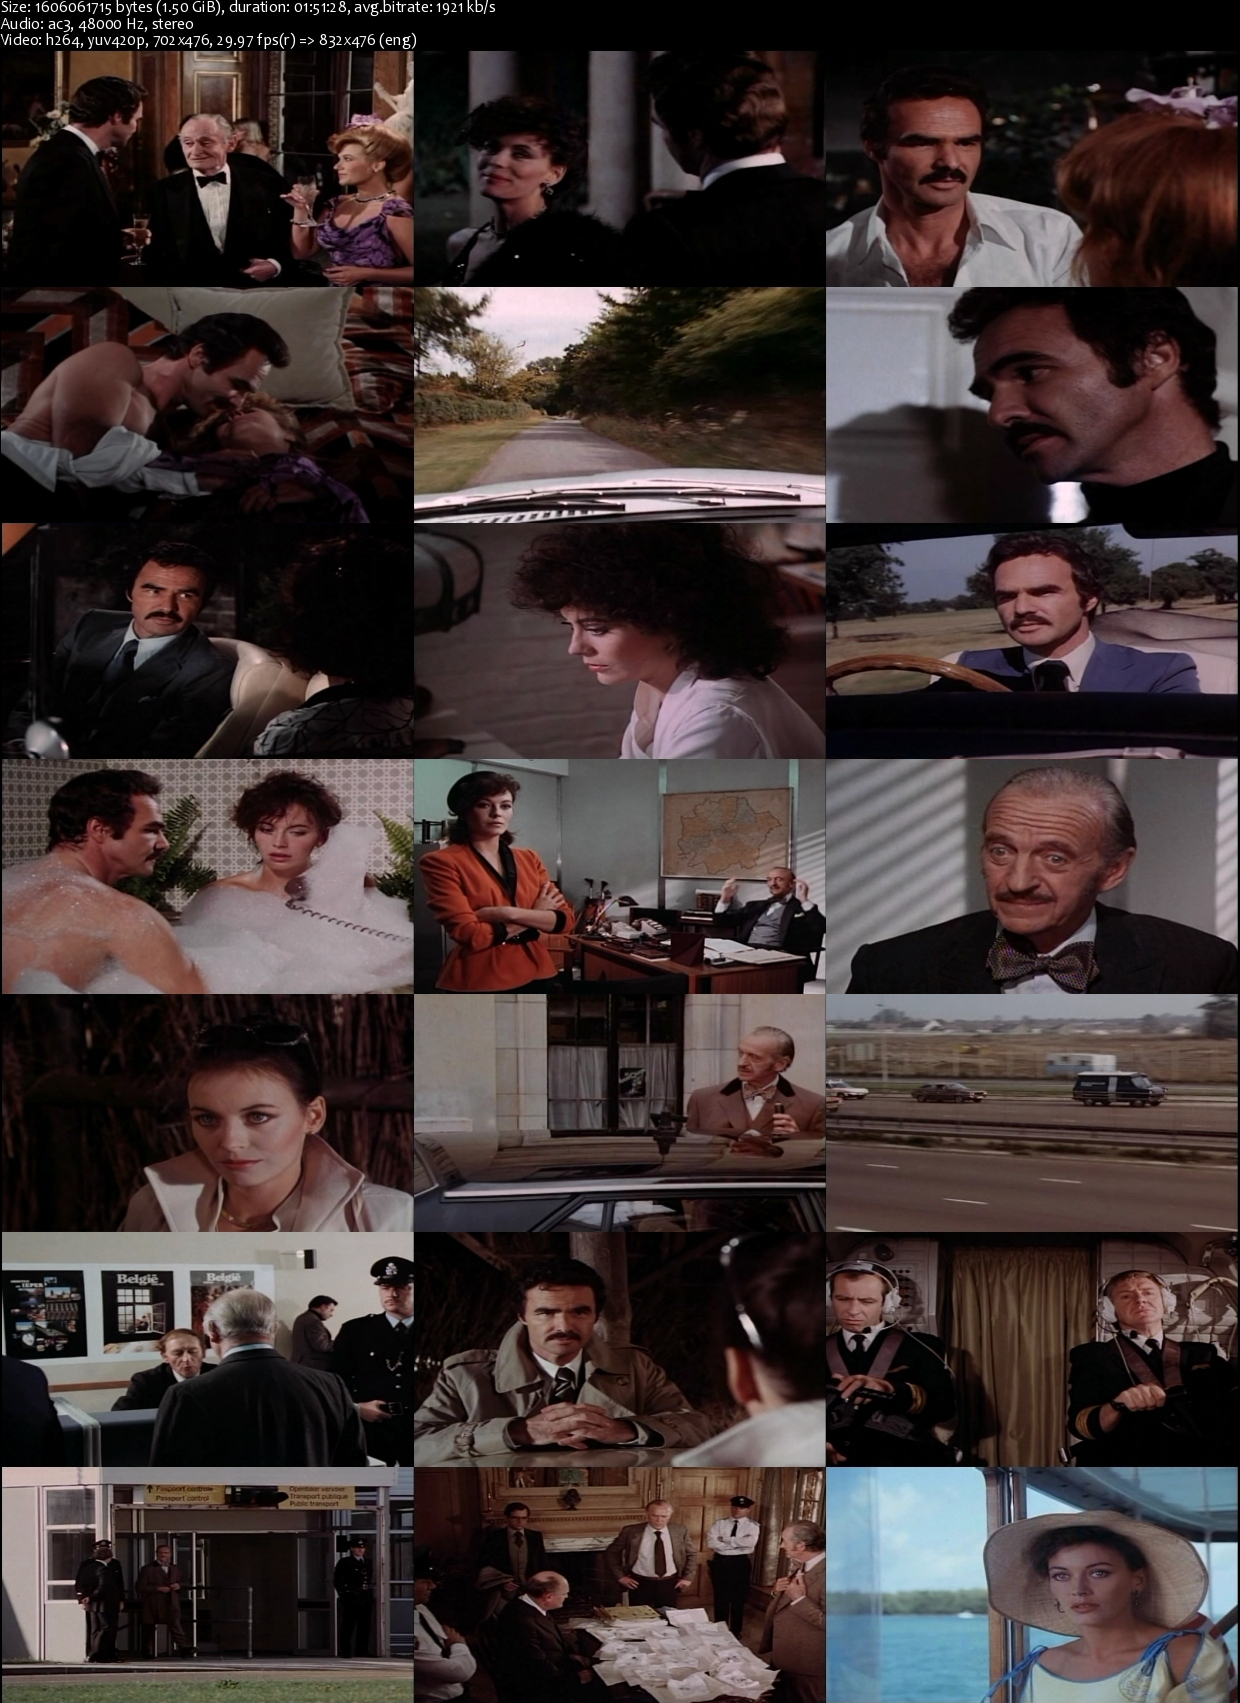 rough_cut_1980.jpg